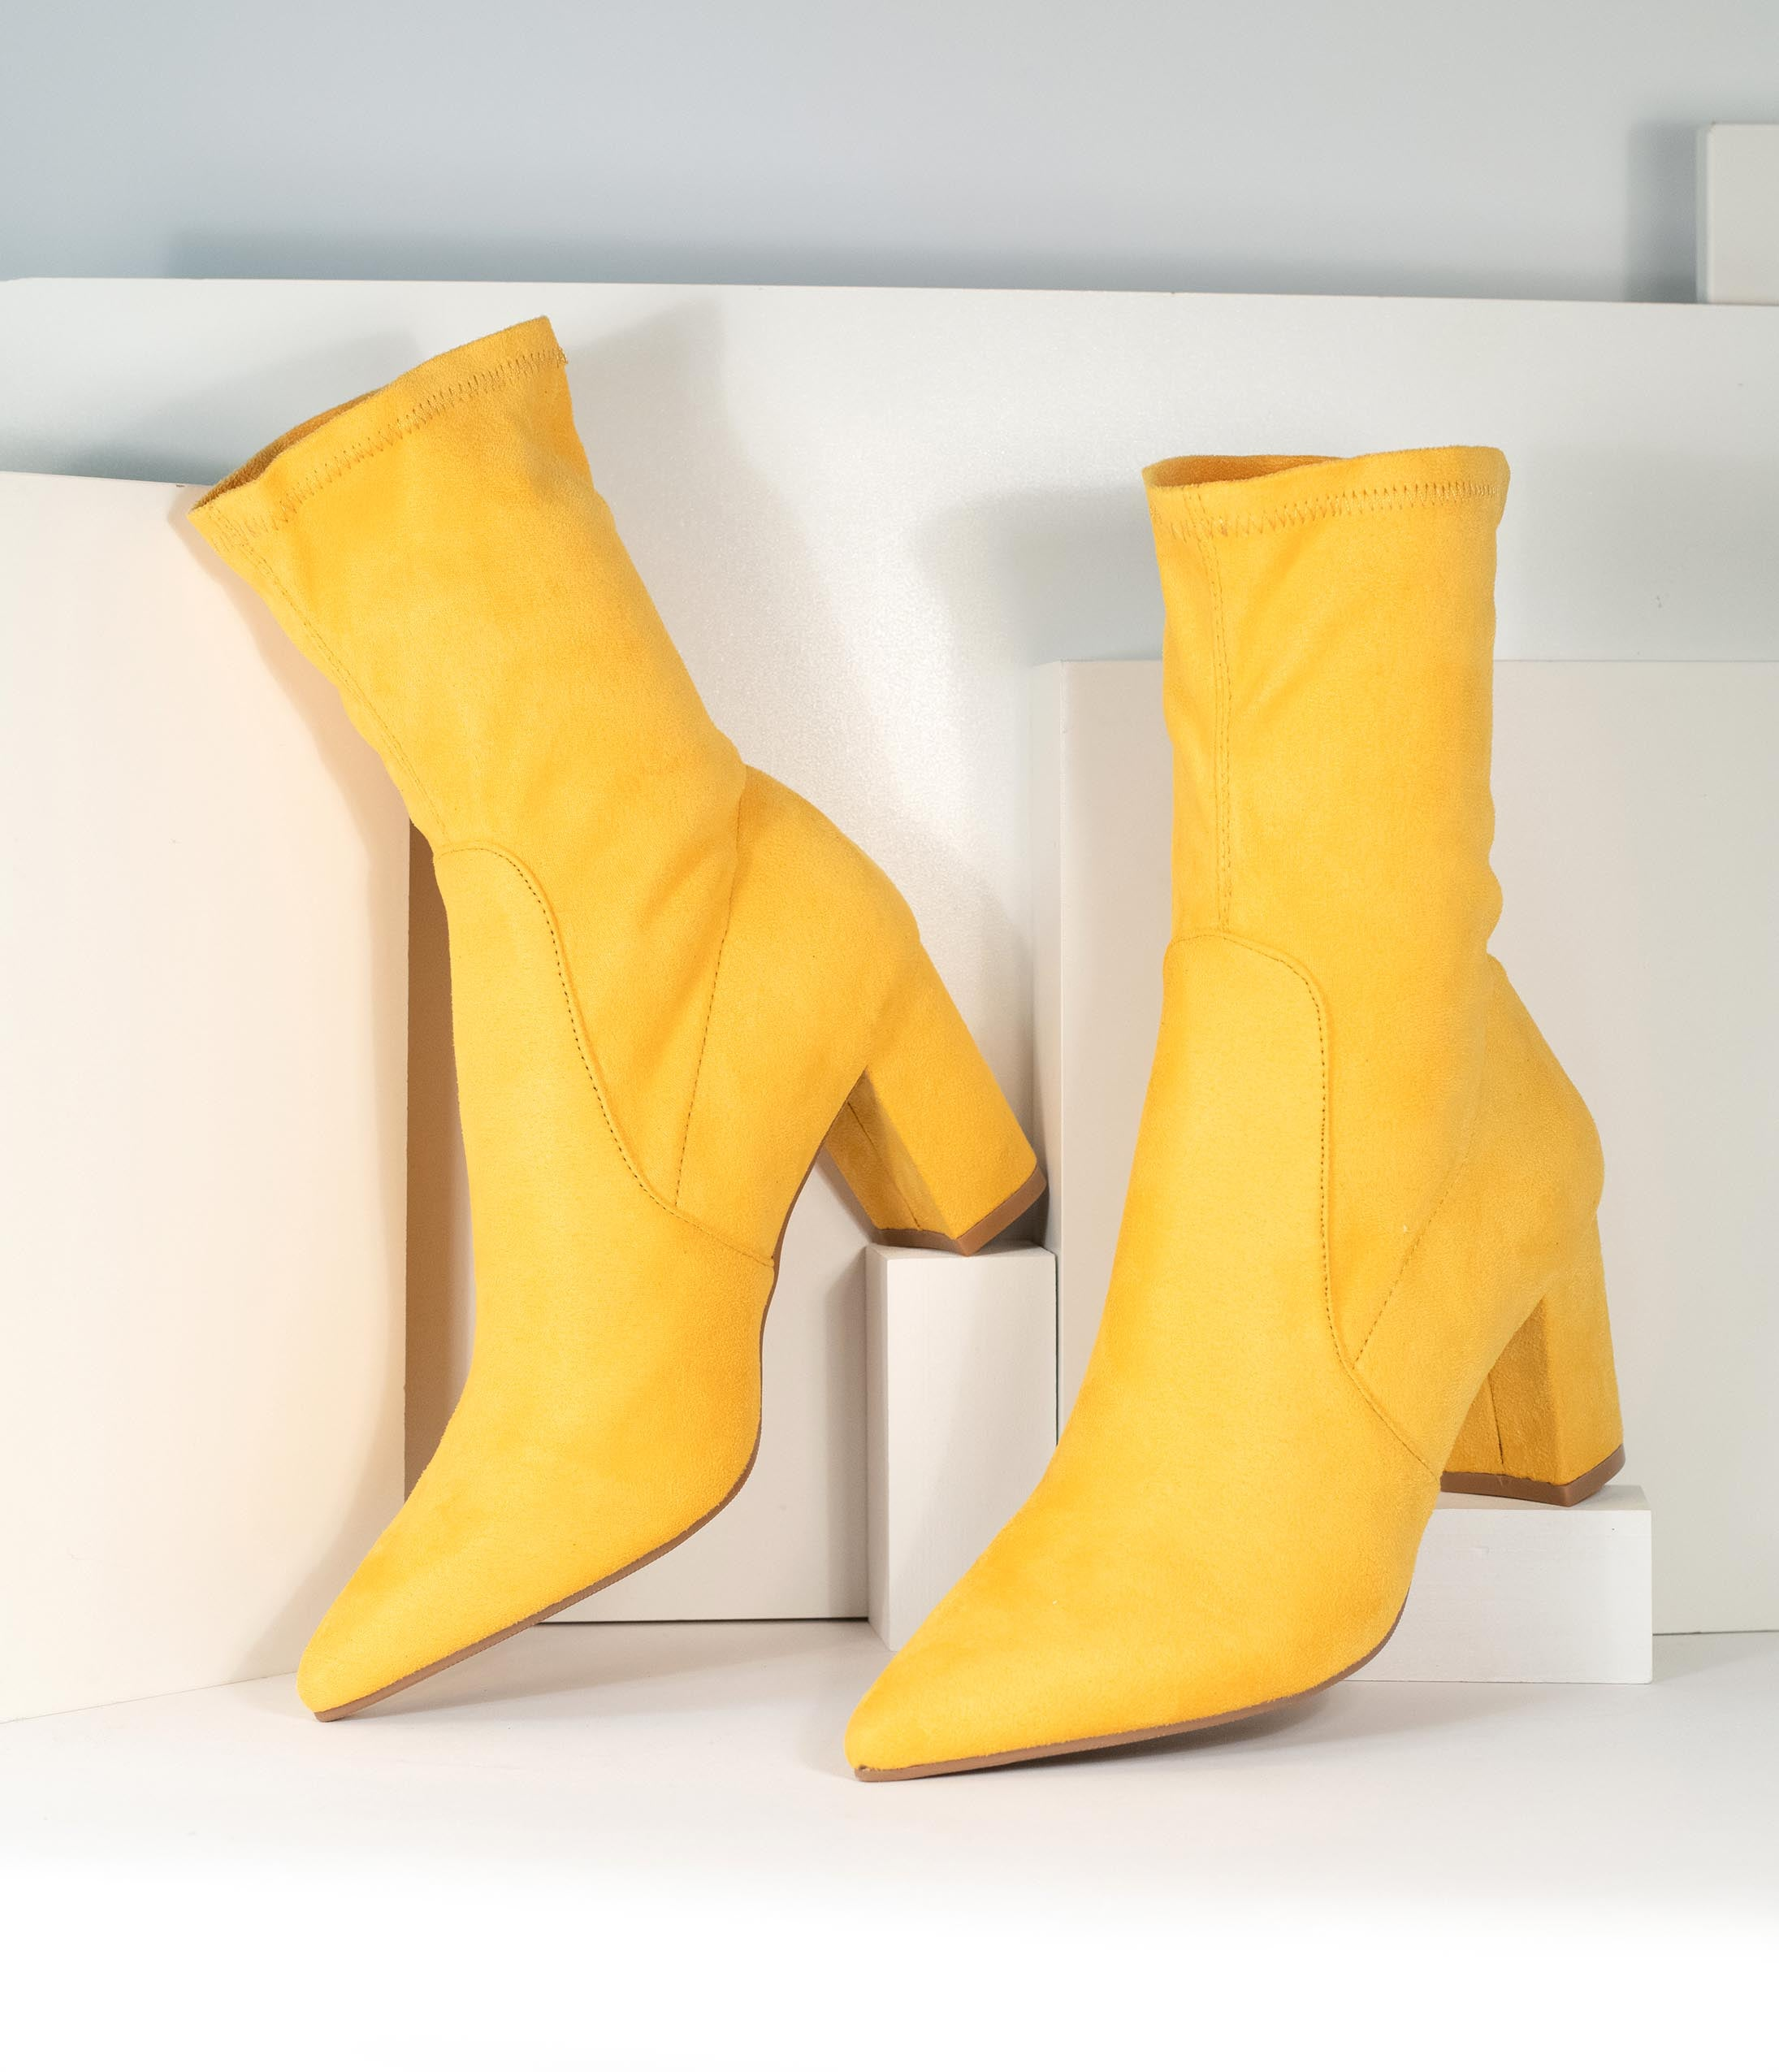 Vintage Boots- Buy Winter Retro Boots Mustard Suede Pointed Bootie $58.00 AT vintagedancer.com